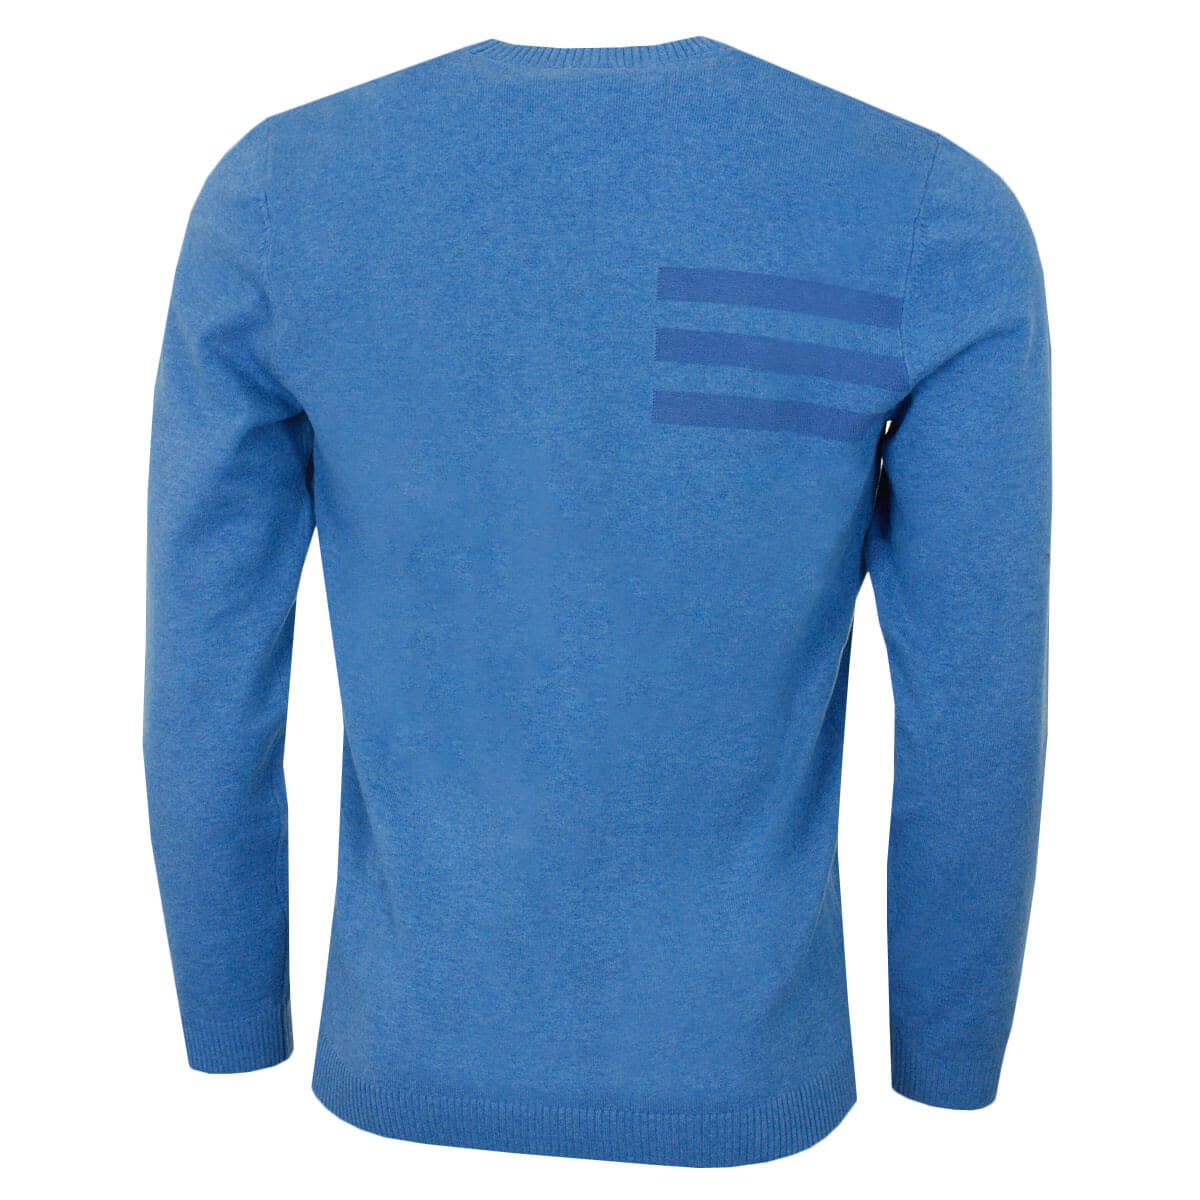 adidas-Golf-Mens-Blend-Cotton-Crew-Neck-Jumper-Pullover-Sweater-44-OFF-RRP thumbnail 9